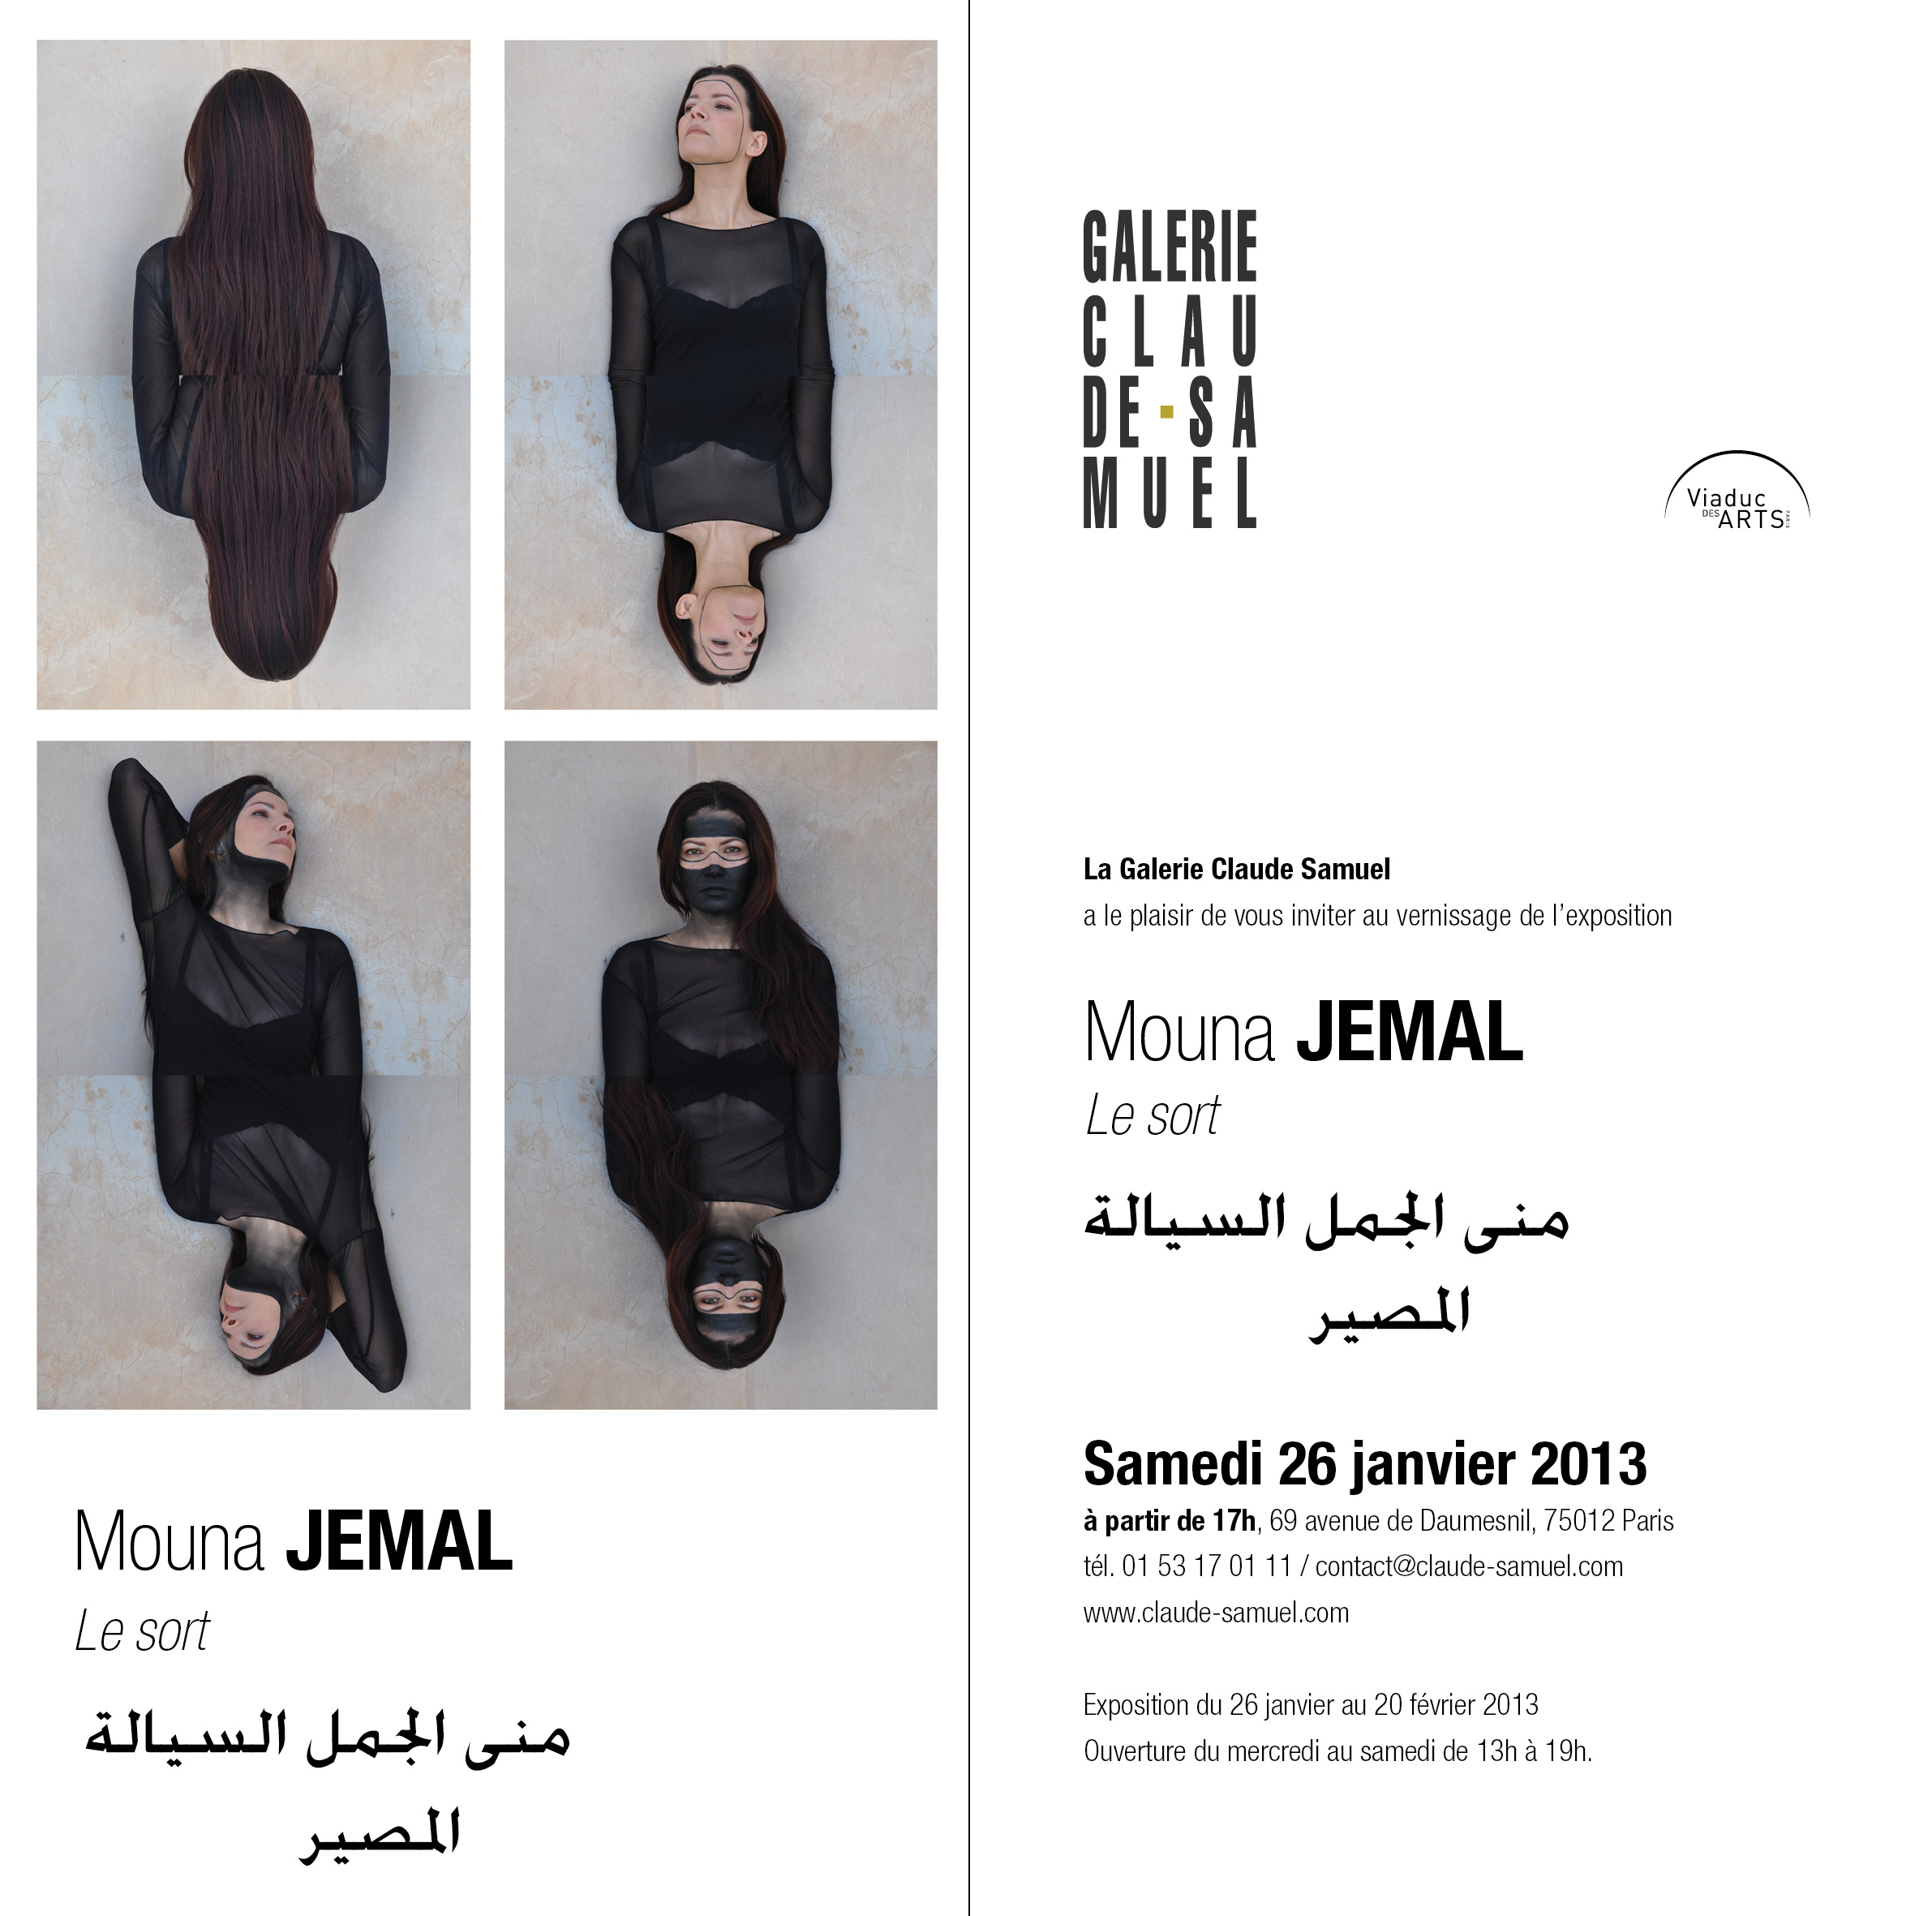 Mouna Jemal - vernissage